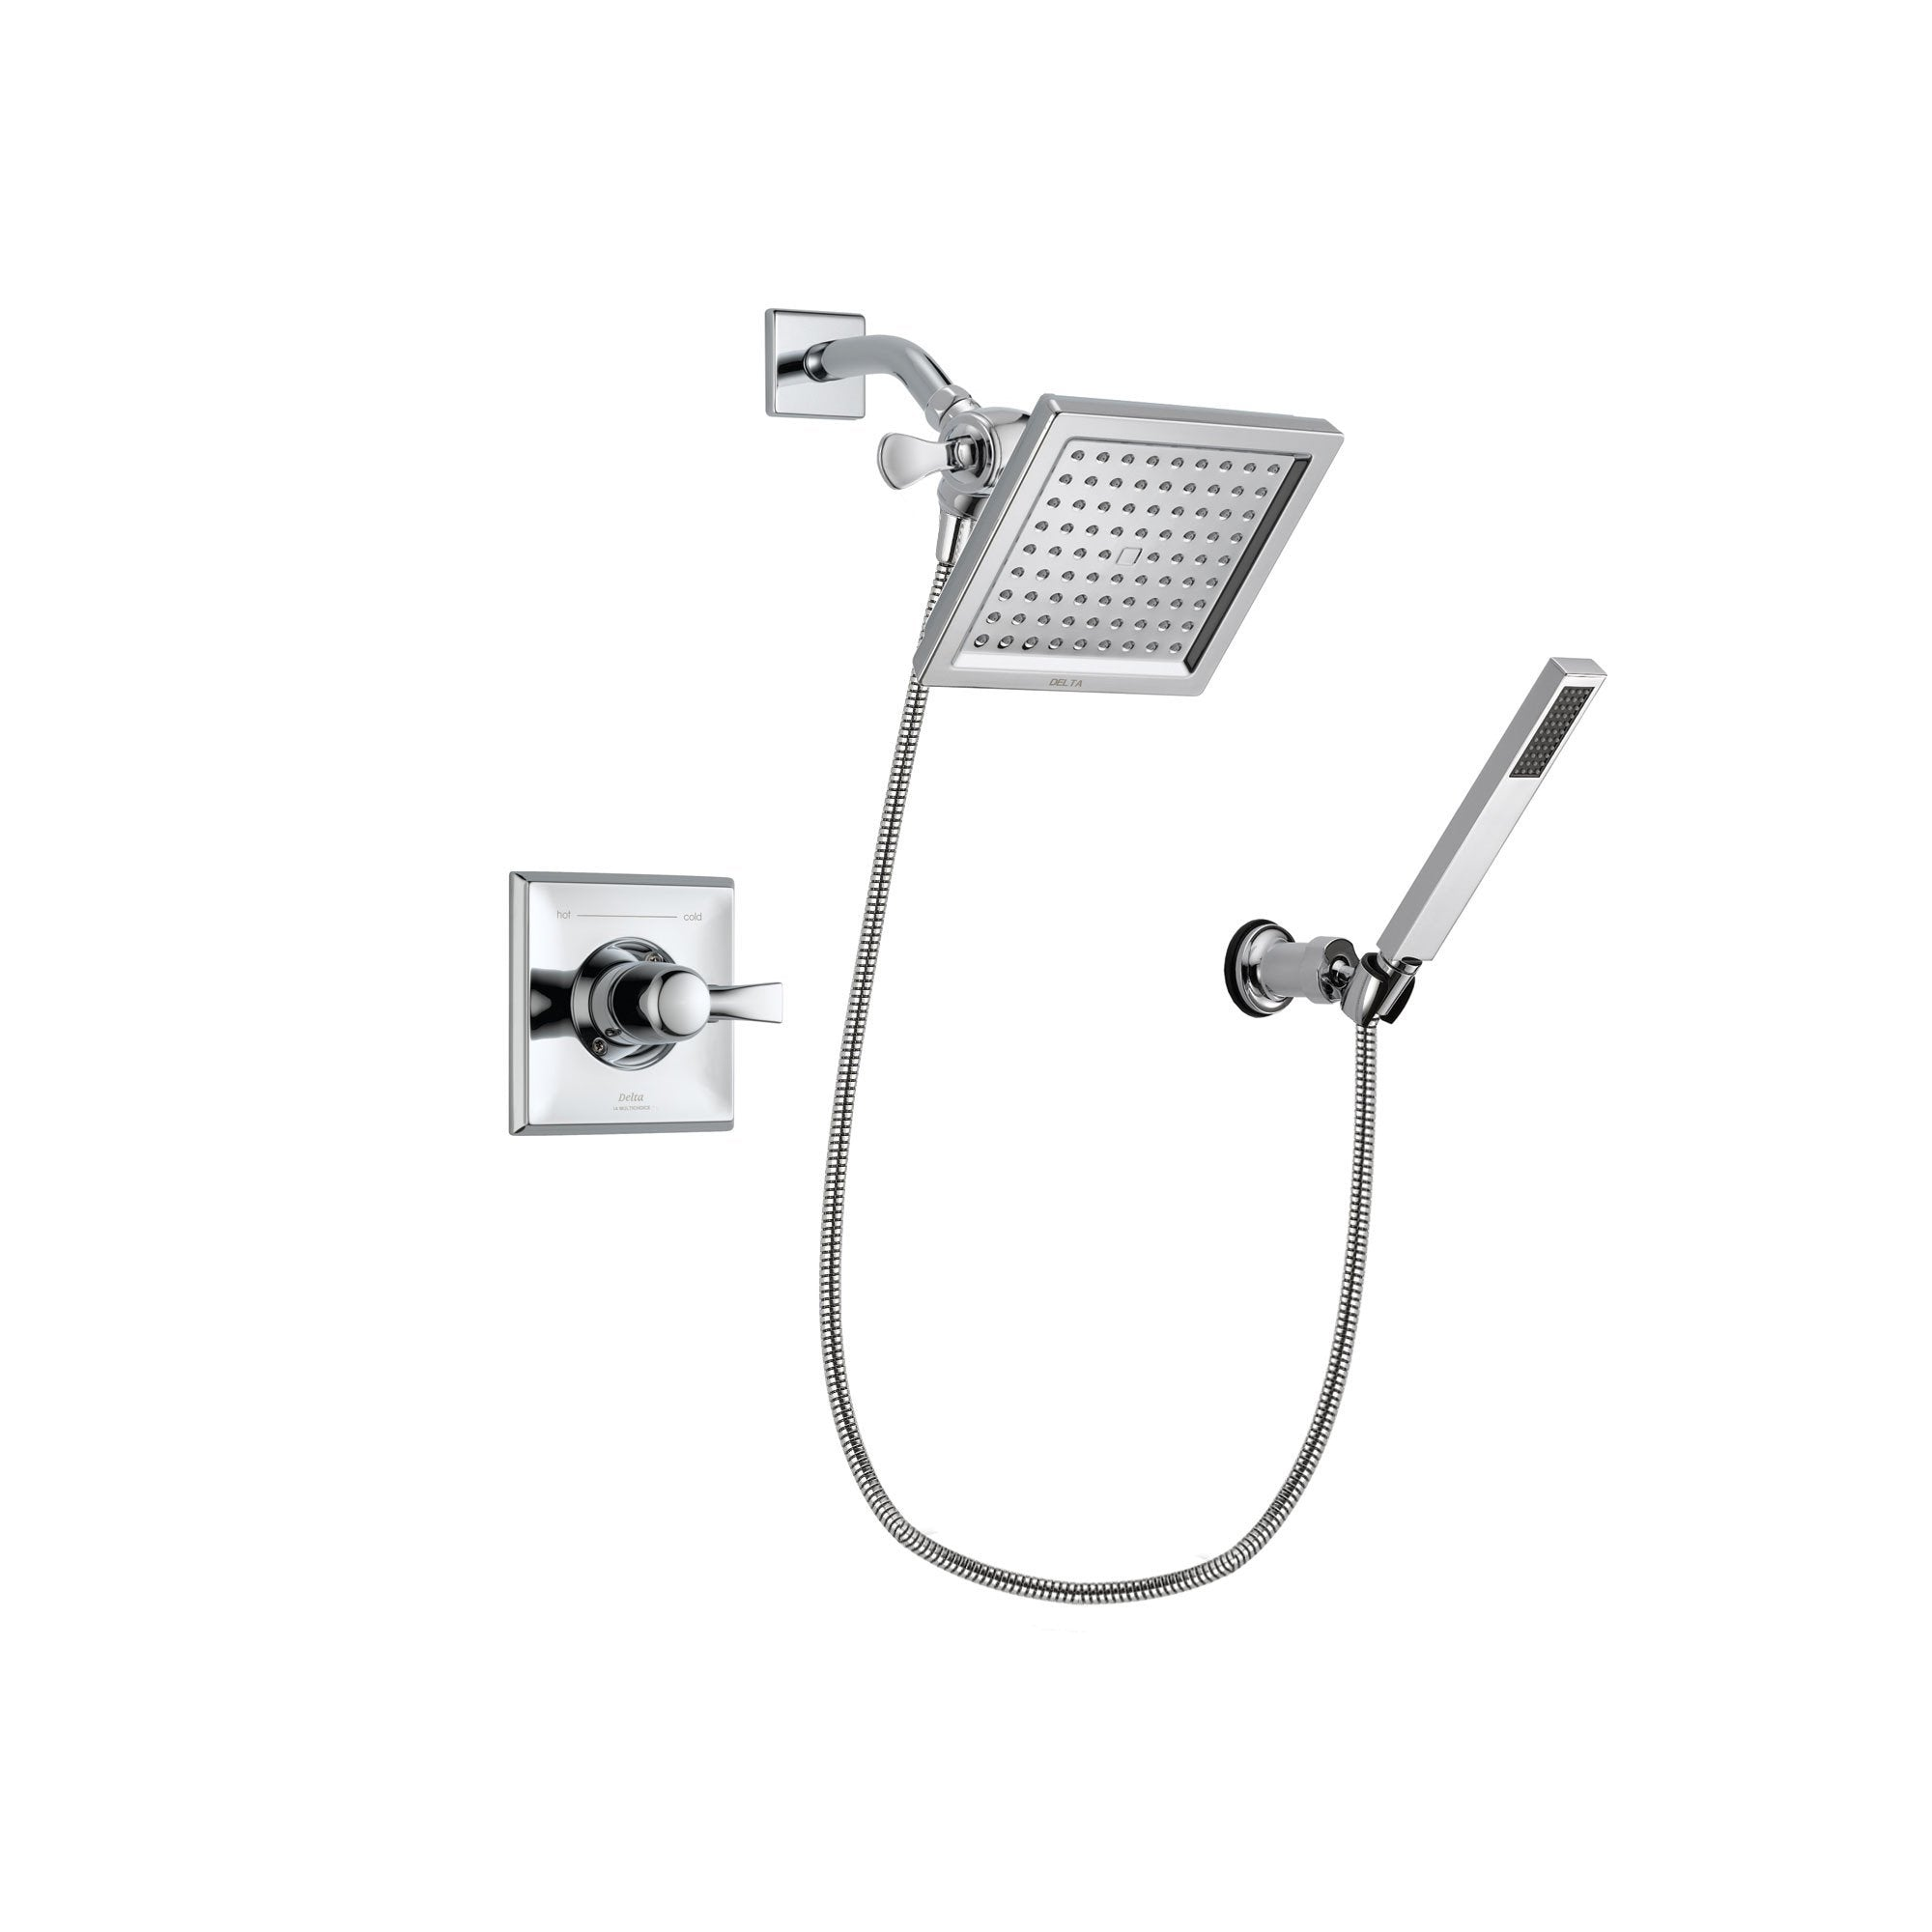 Delta Dryden Chrome Shower Faucet System with Shower Head & Hand Shower DSP0120V